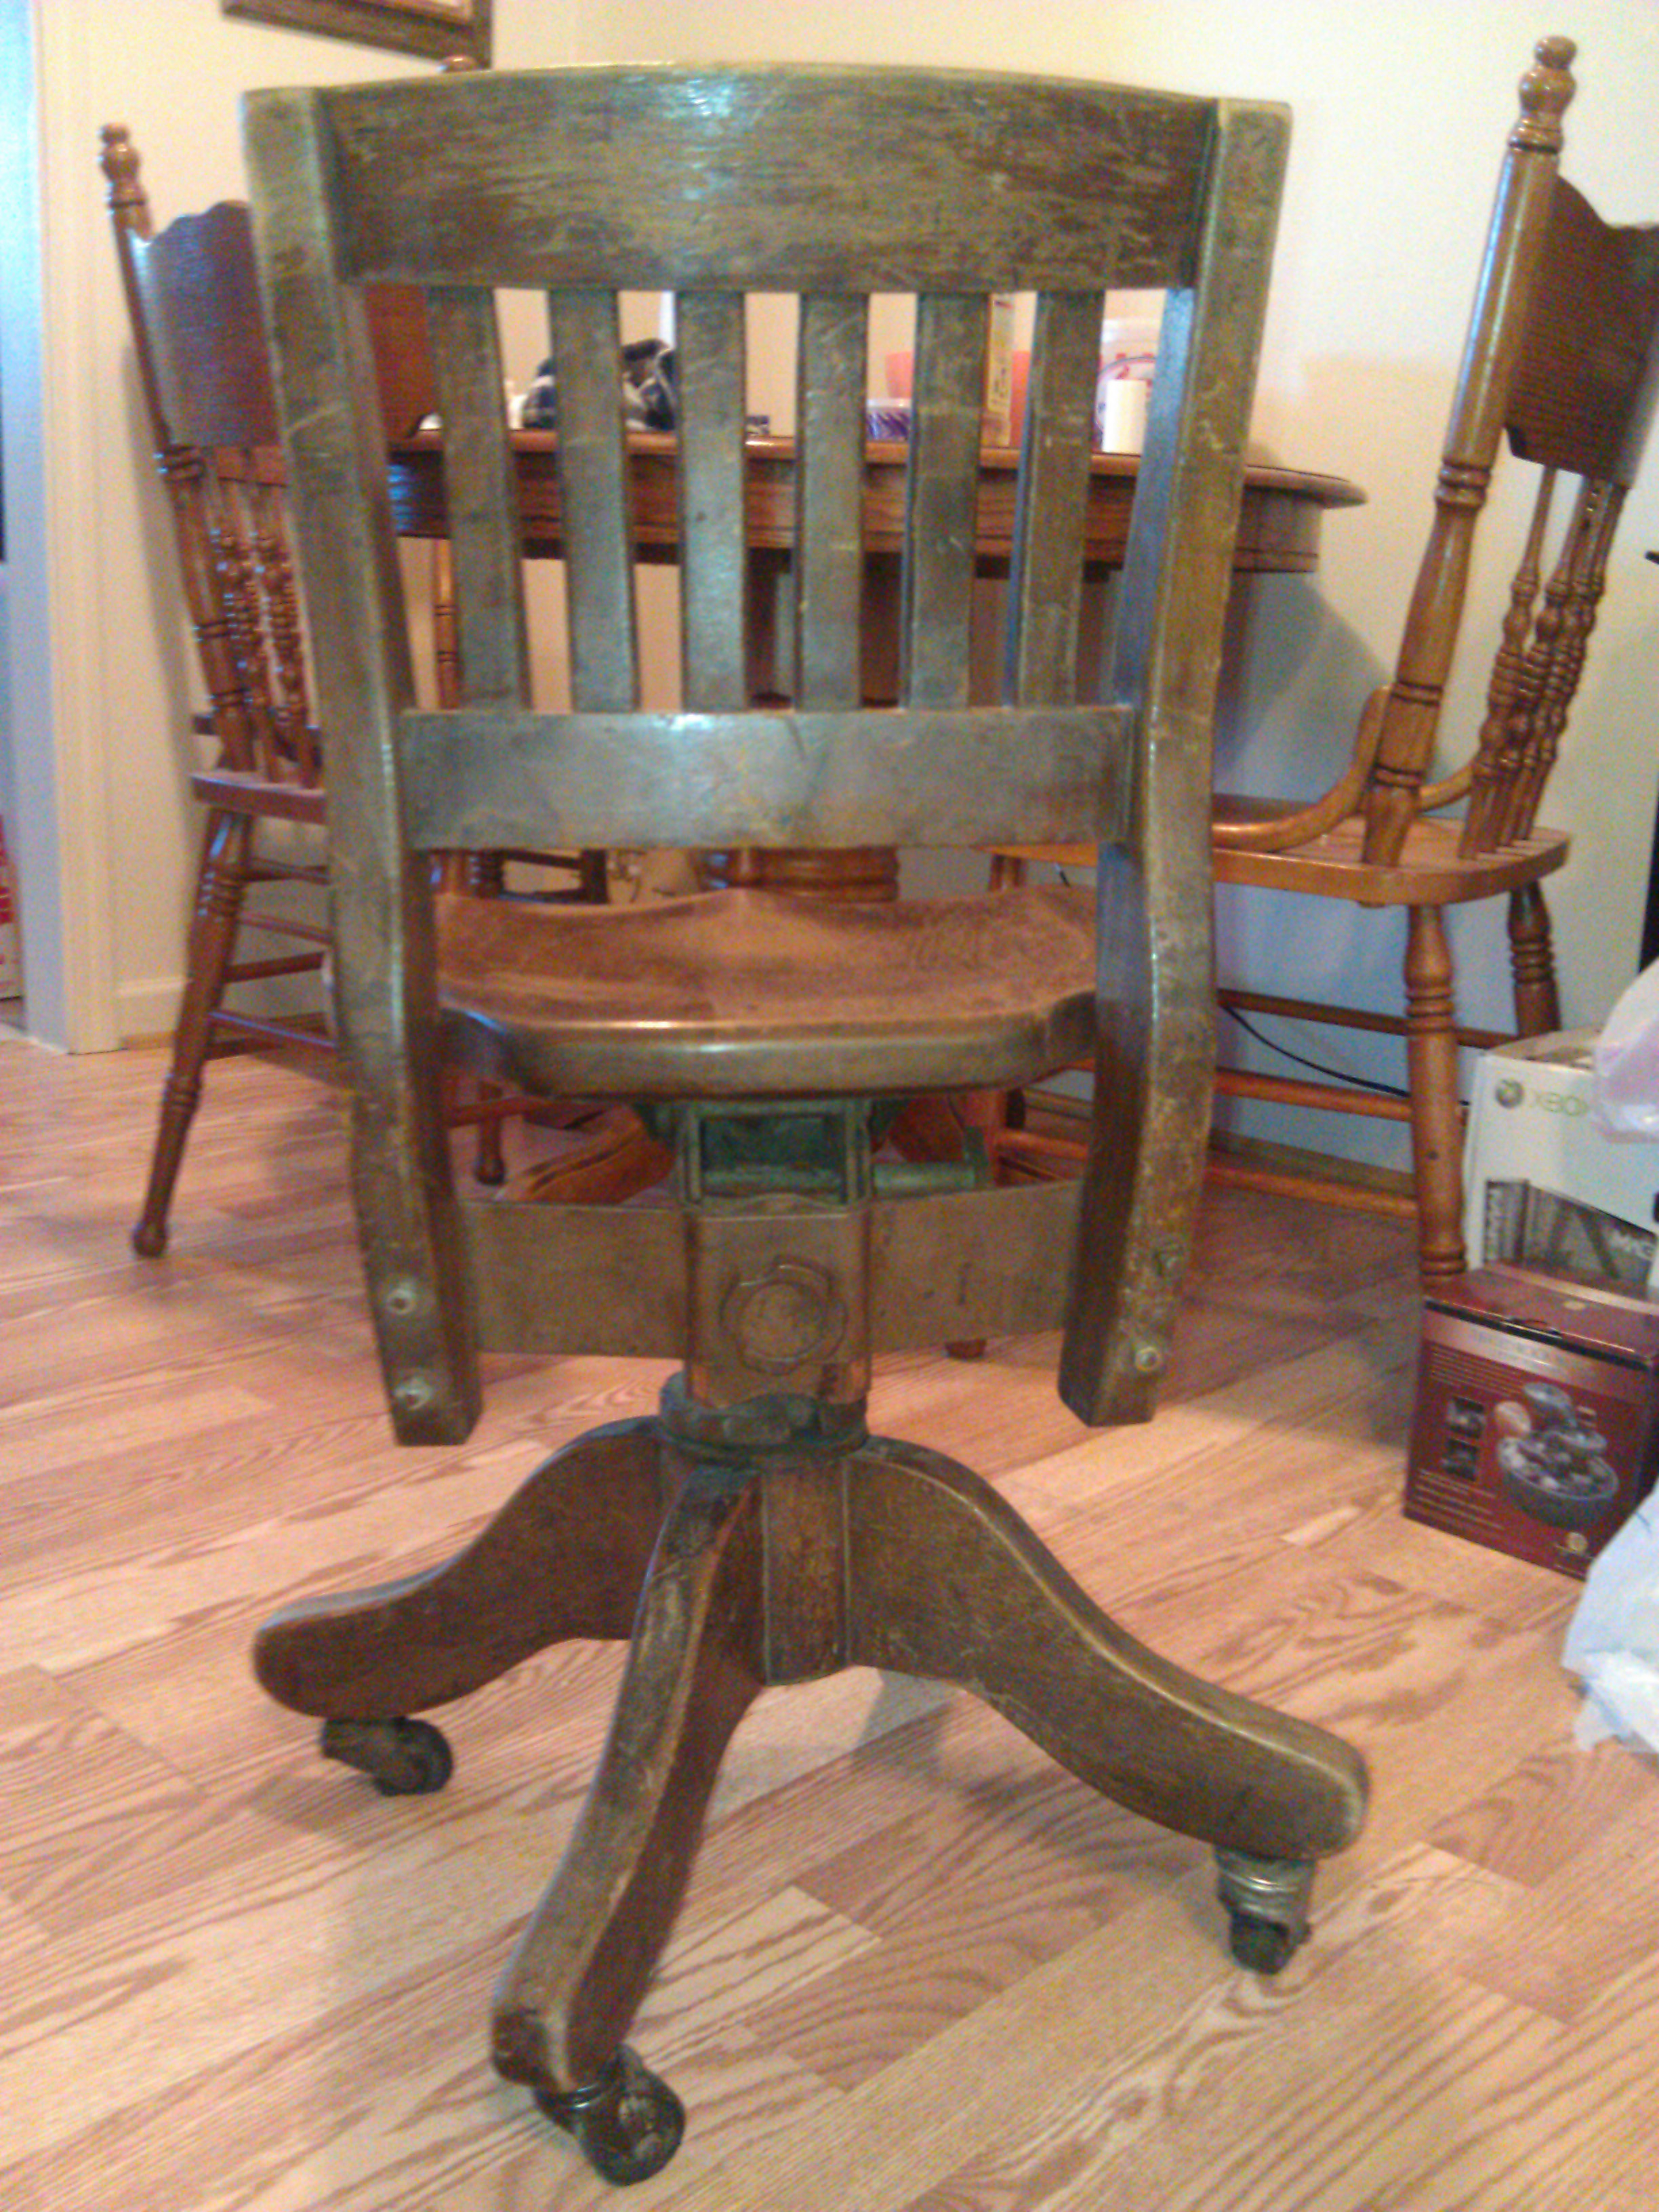 Wooden Swivel Desk Chair Antique Appraisal Instappraisal